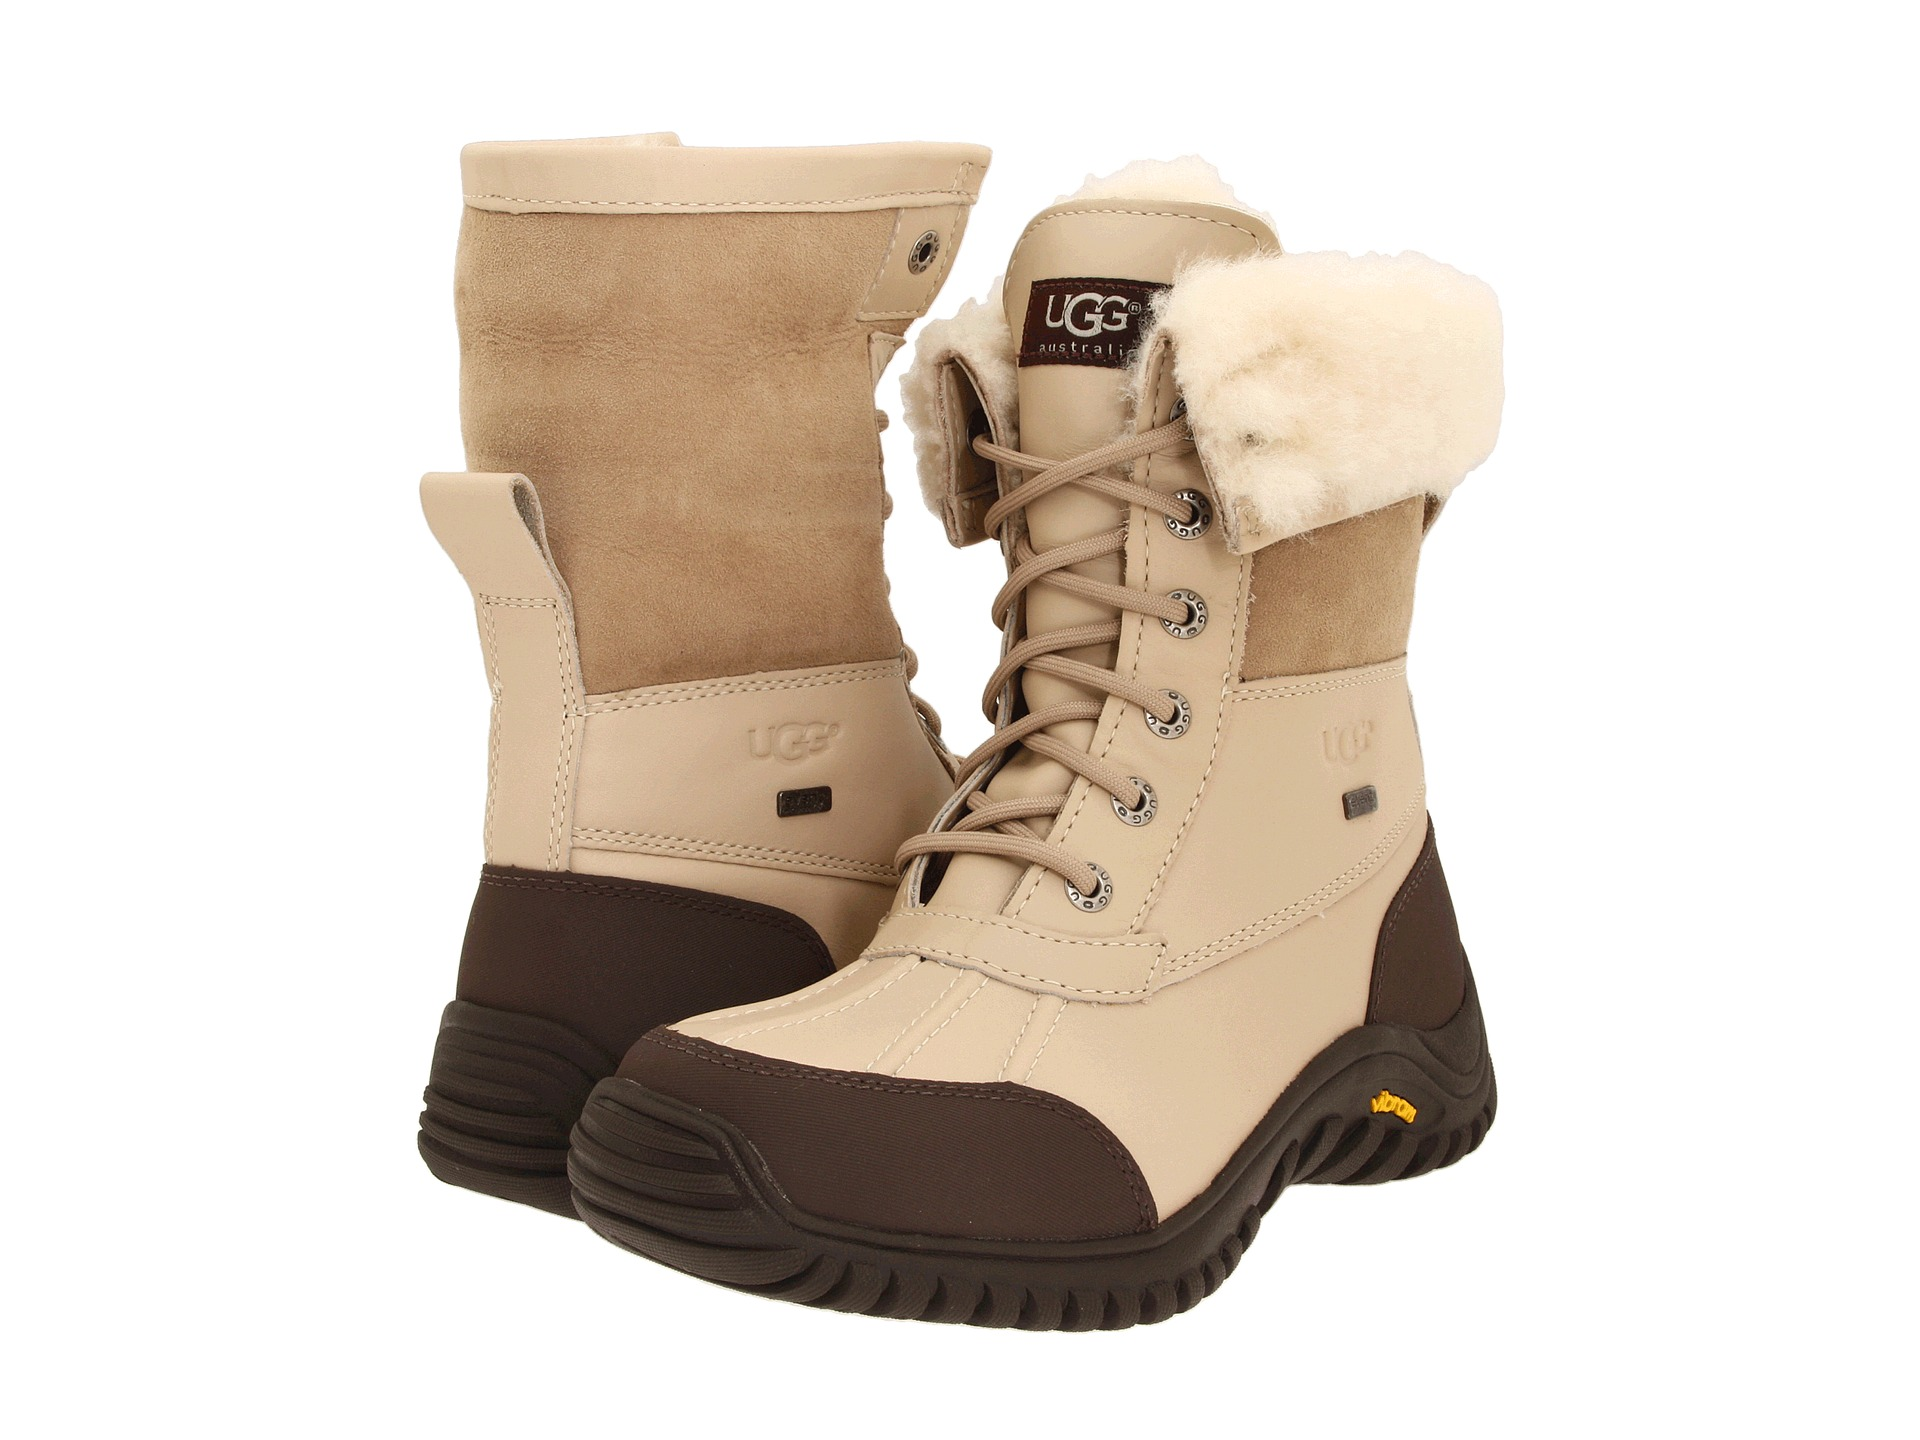 ugg adirondack boot ii sand free shipping both ways. Black Bedroom Furniture Sets. Home Design Ideas